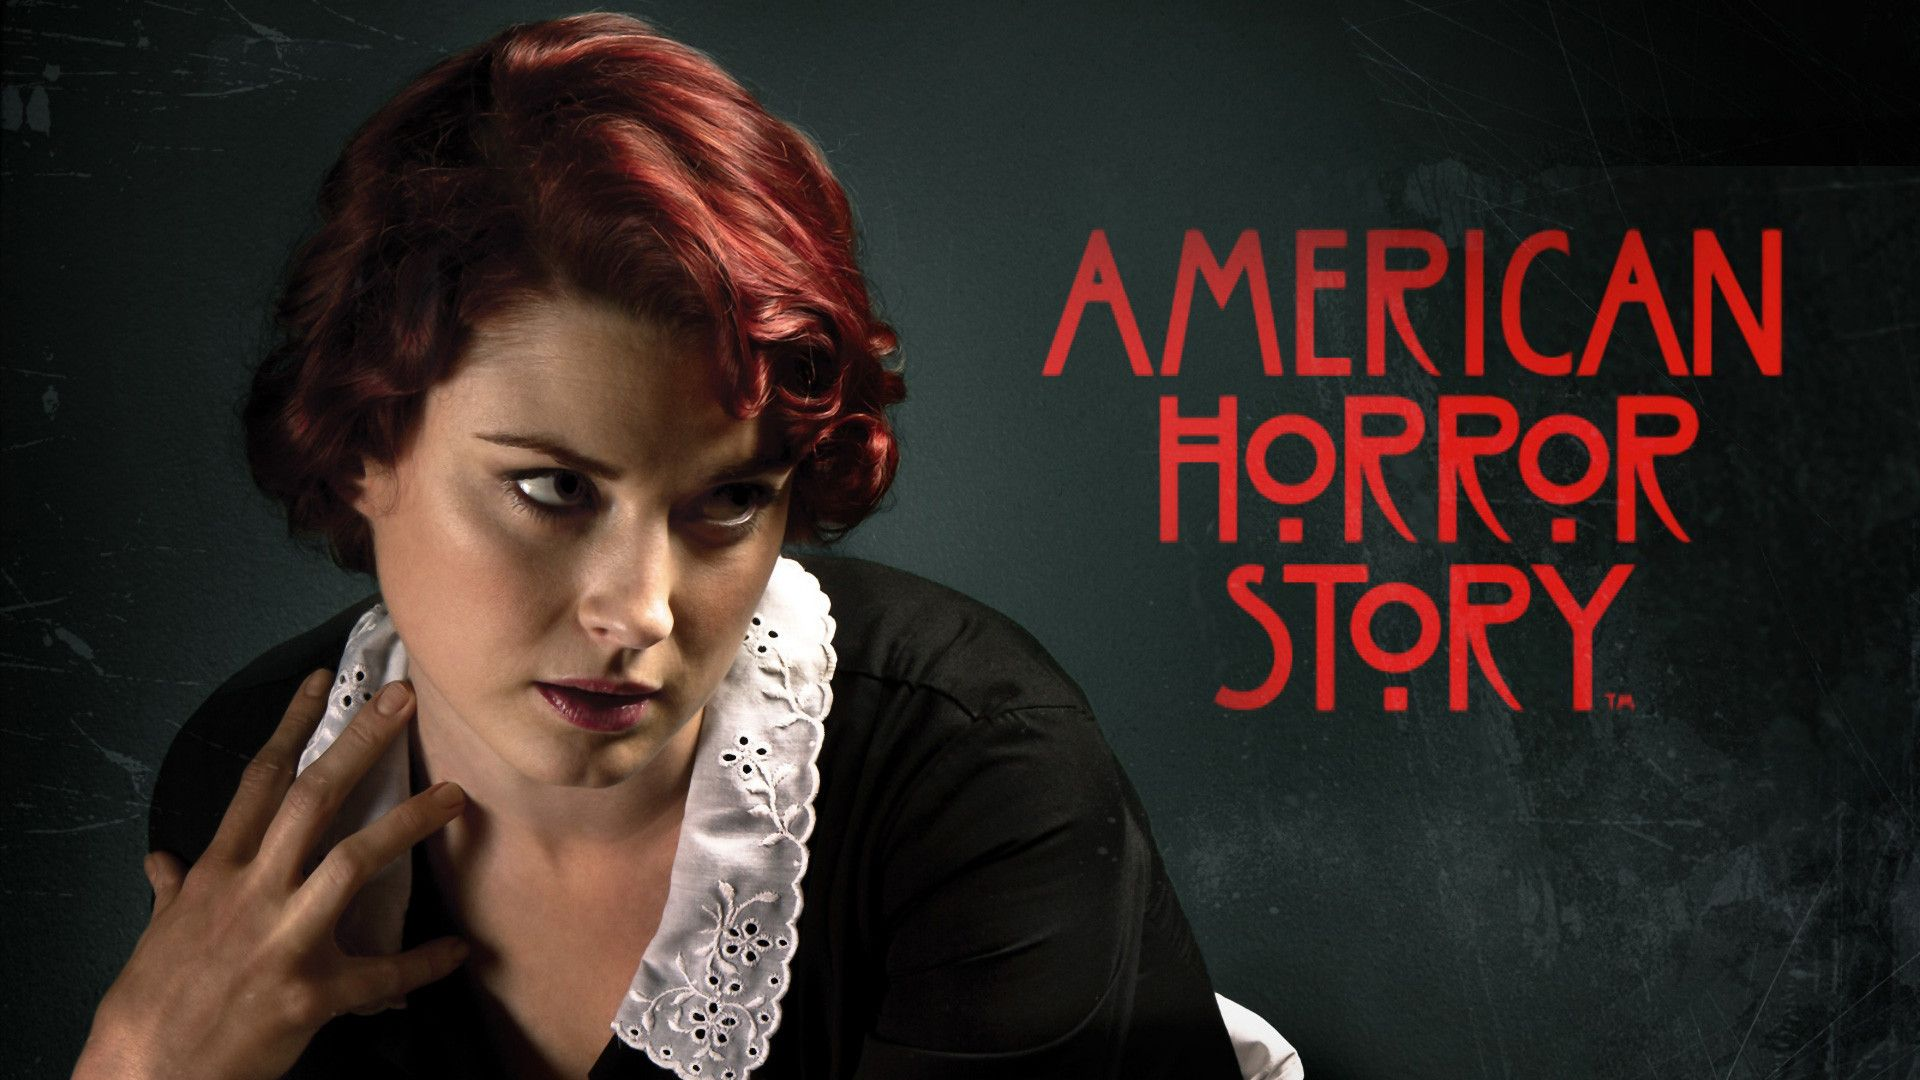 American Horror Story HD Wallpapers, Pictures, Image